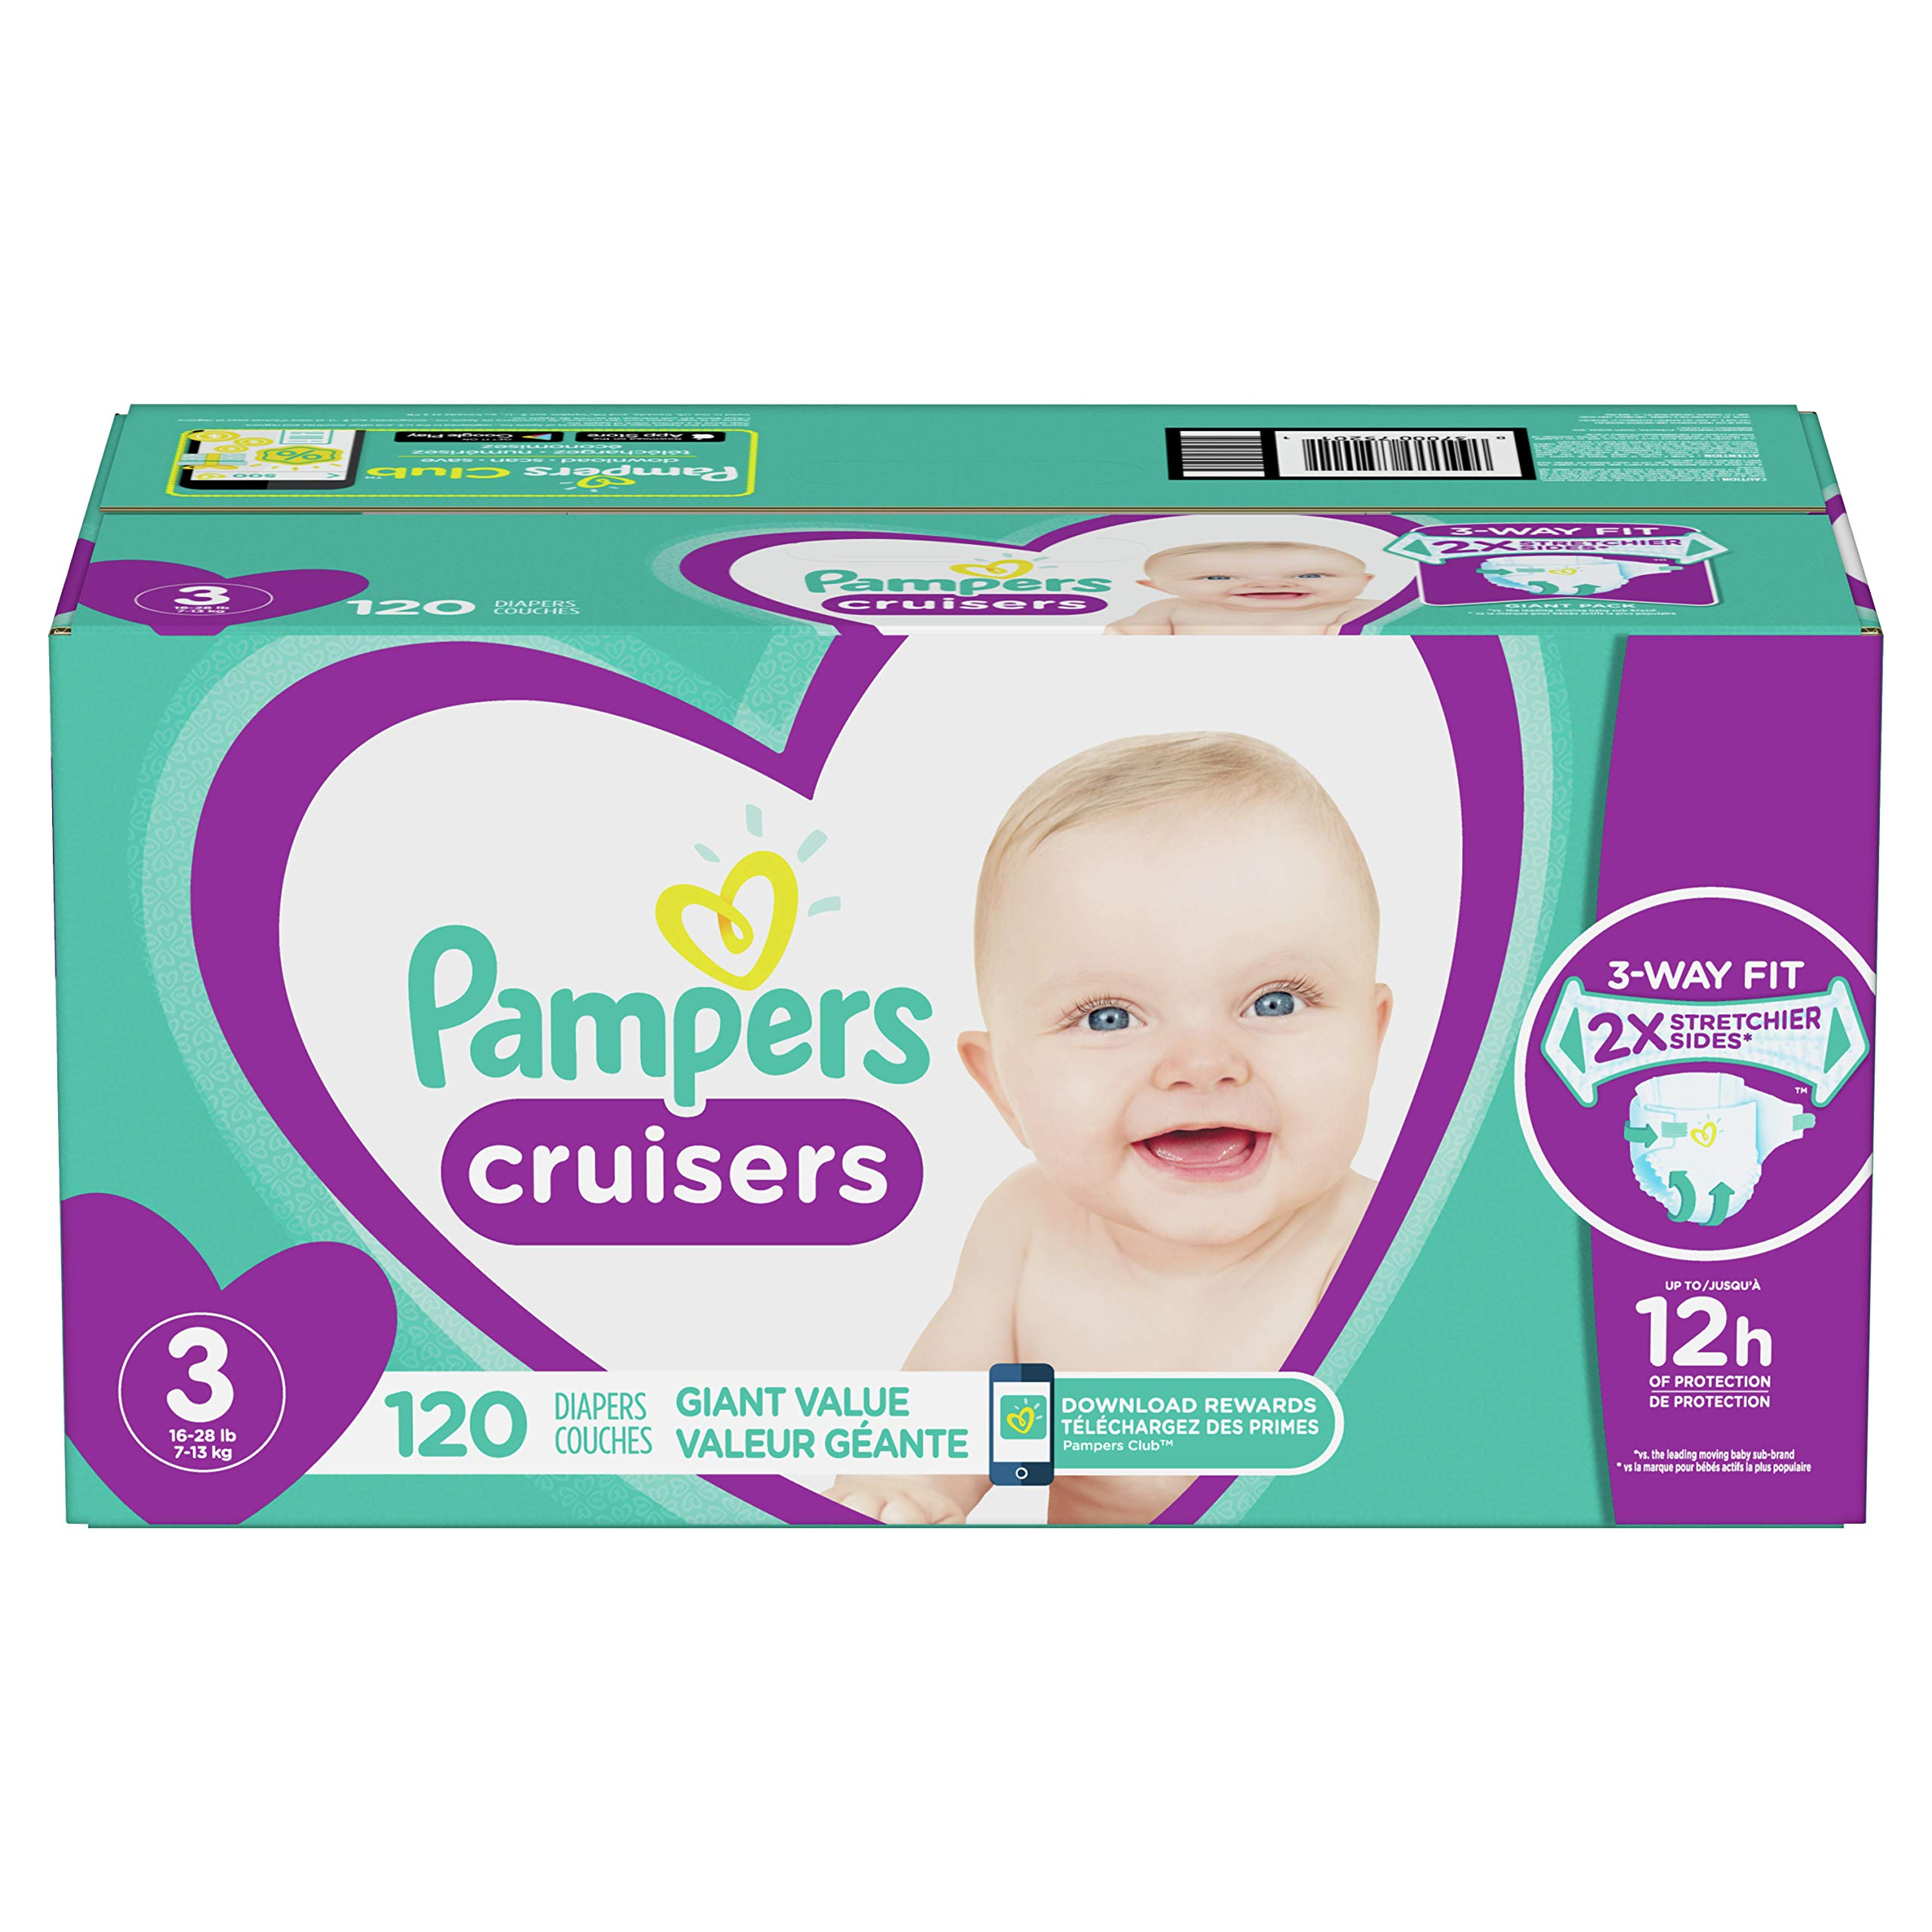 Diapers Size 3, 120 Count – Pampers Cruisers Disposable Baby Diapers, Giant Pack (Packaging May Vary)